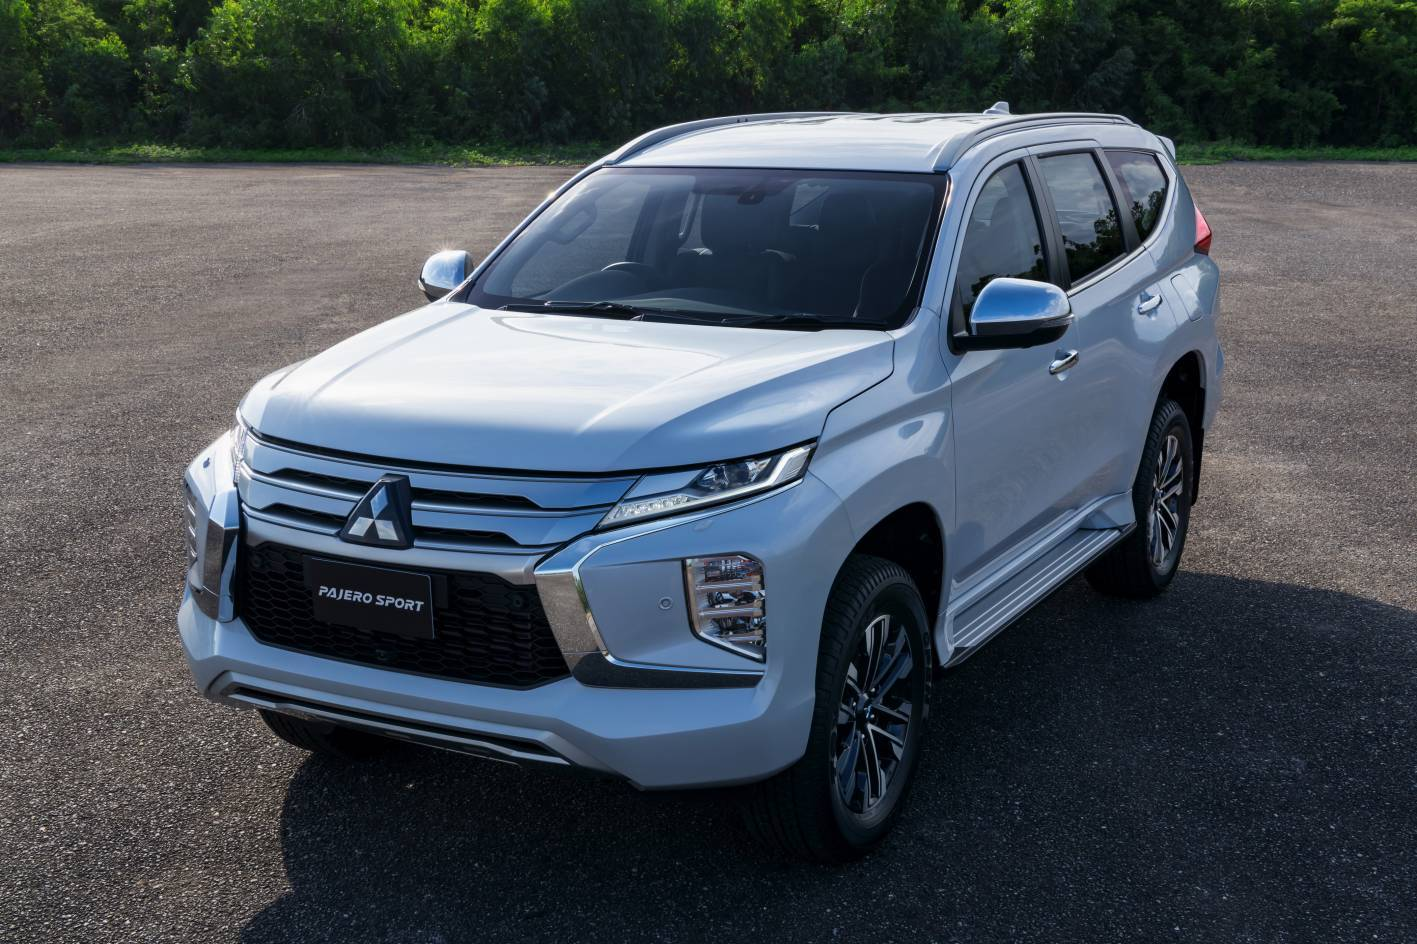 54 All New 2020 All Mitsubishi Pajero Configurations for 2020 All Mitsubishi Pajero